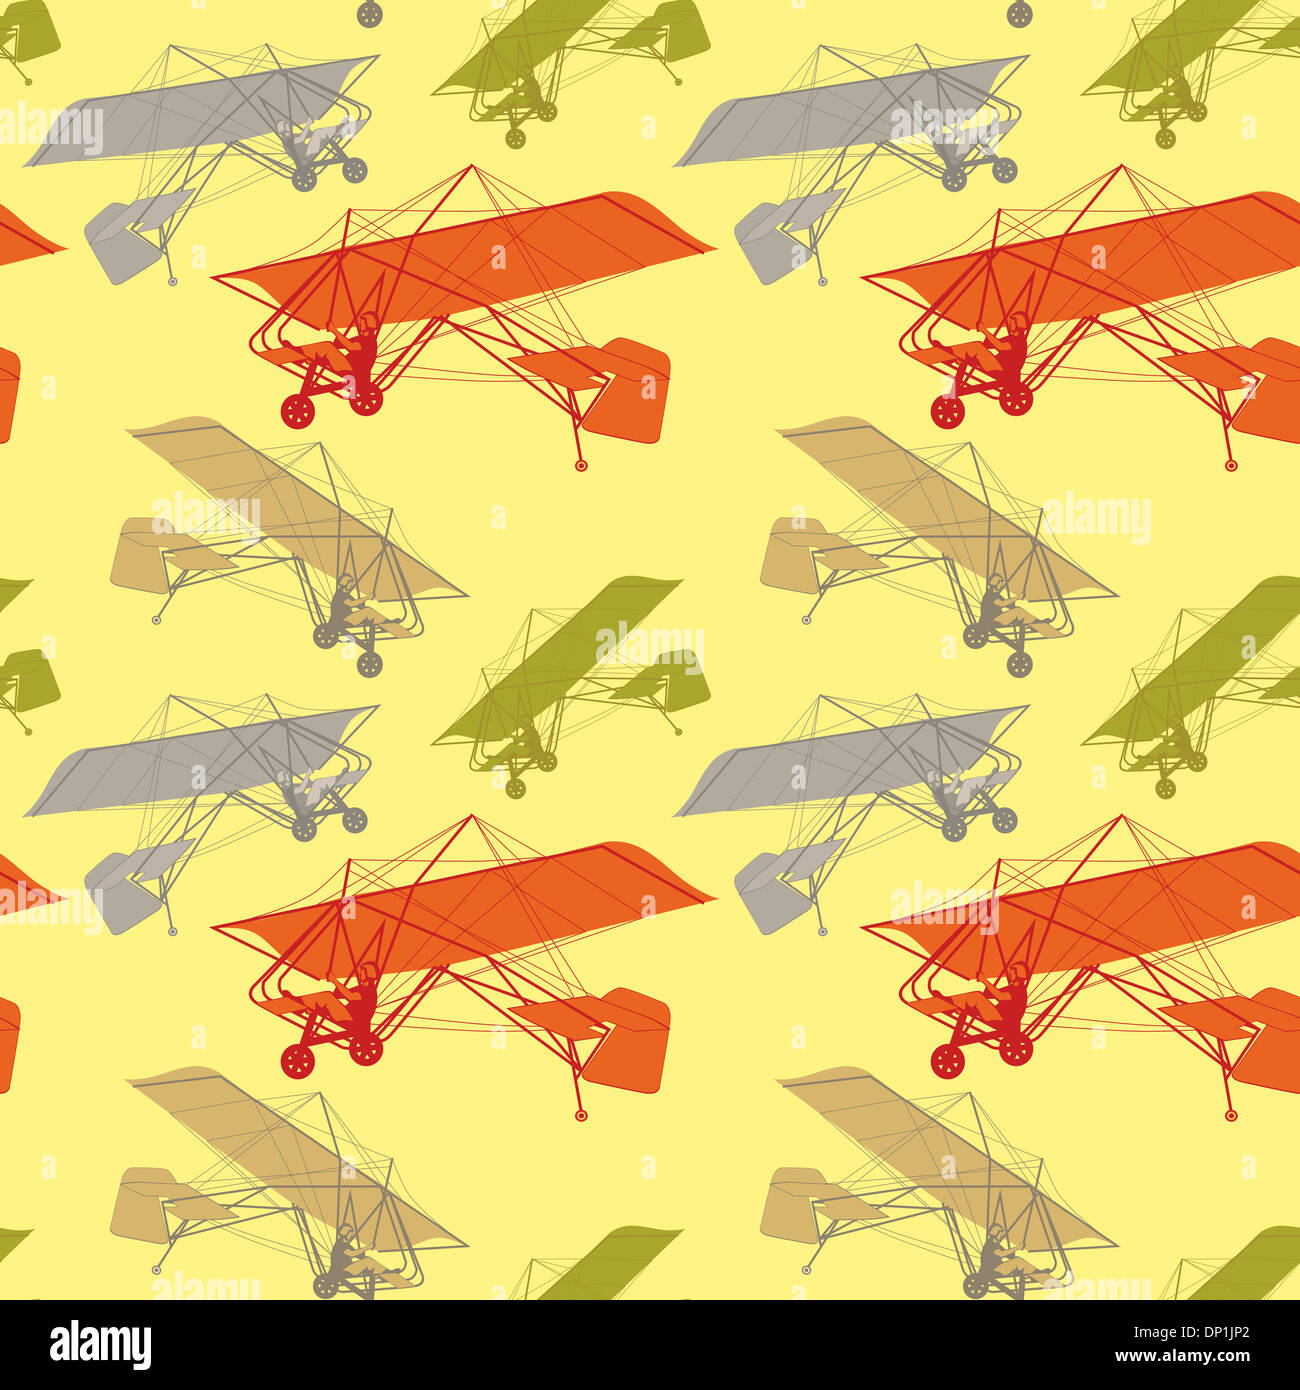 illustration seamless pattern with isolated gliders - Stock Image